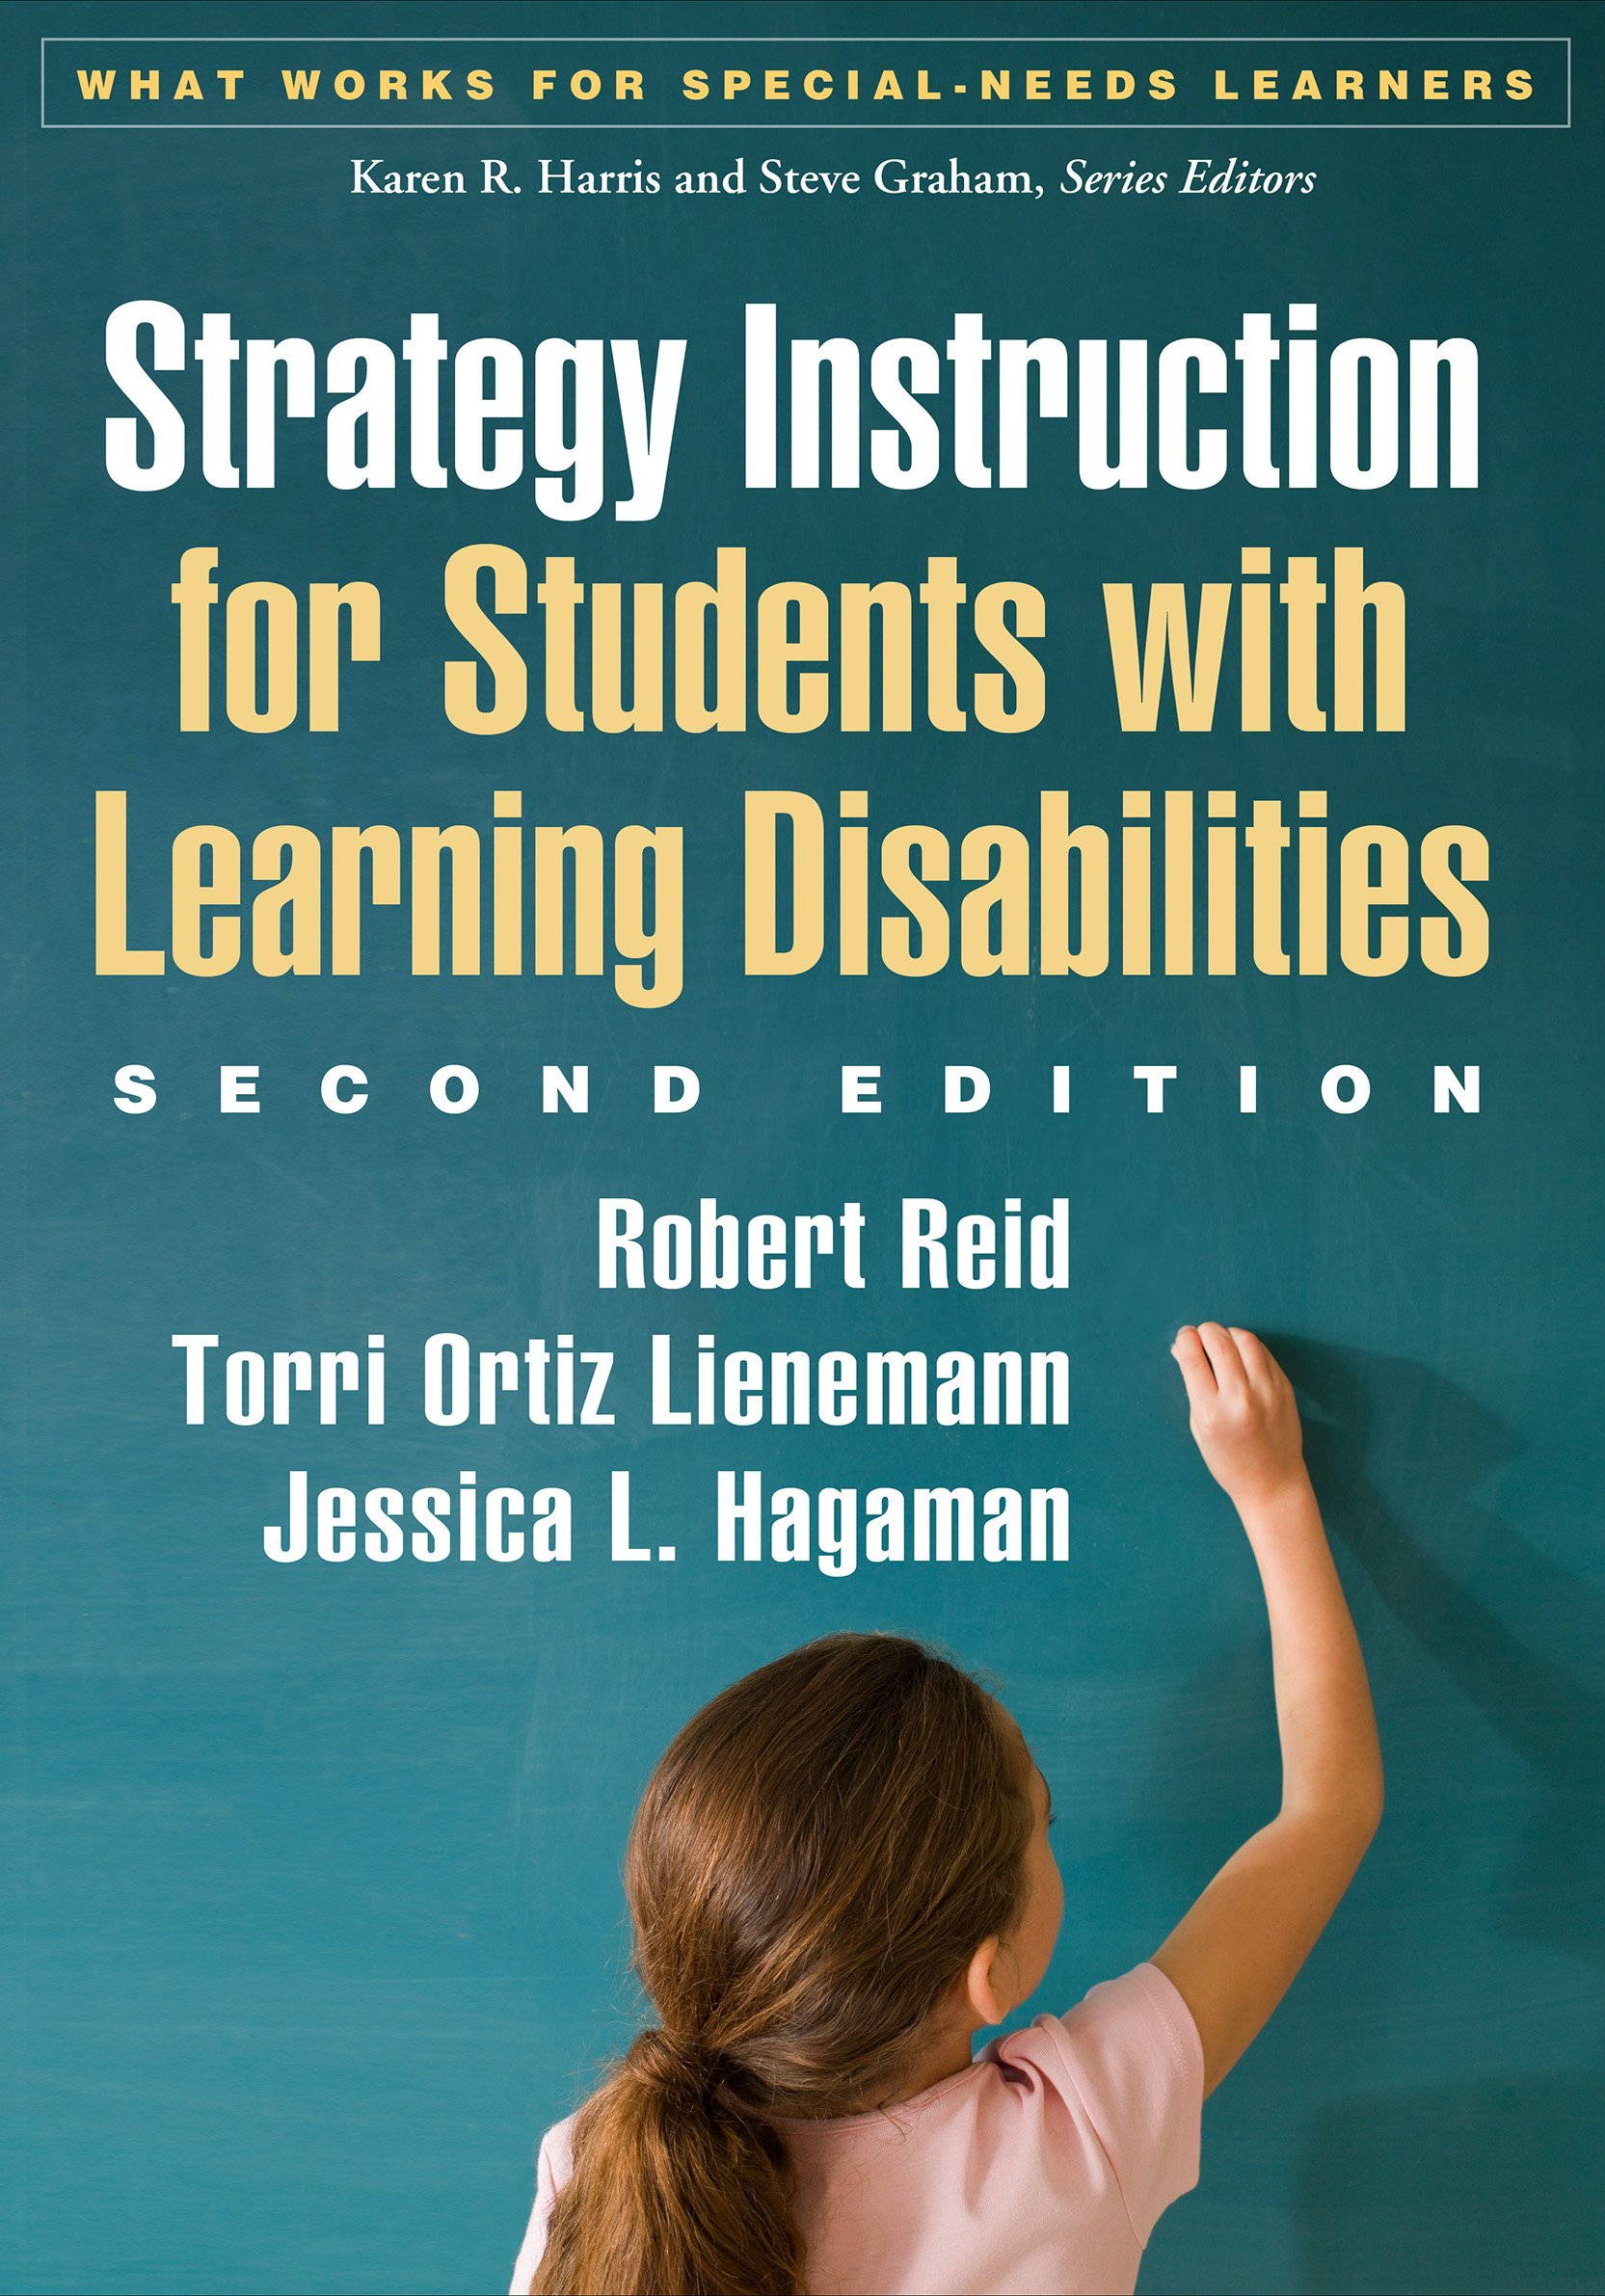 Strategy Instruction for Students with Learning Disabilities, Second Edition (What Works for Special-Needs Learners) by Guilford Publications